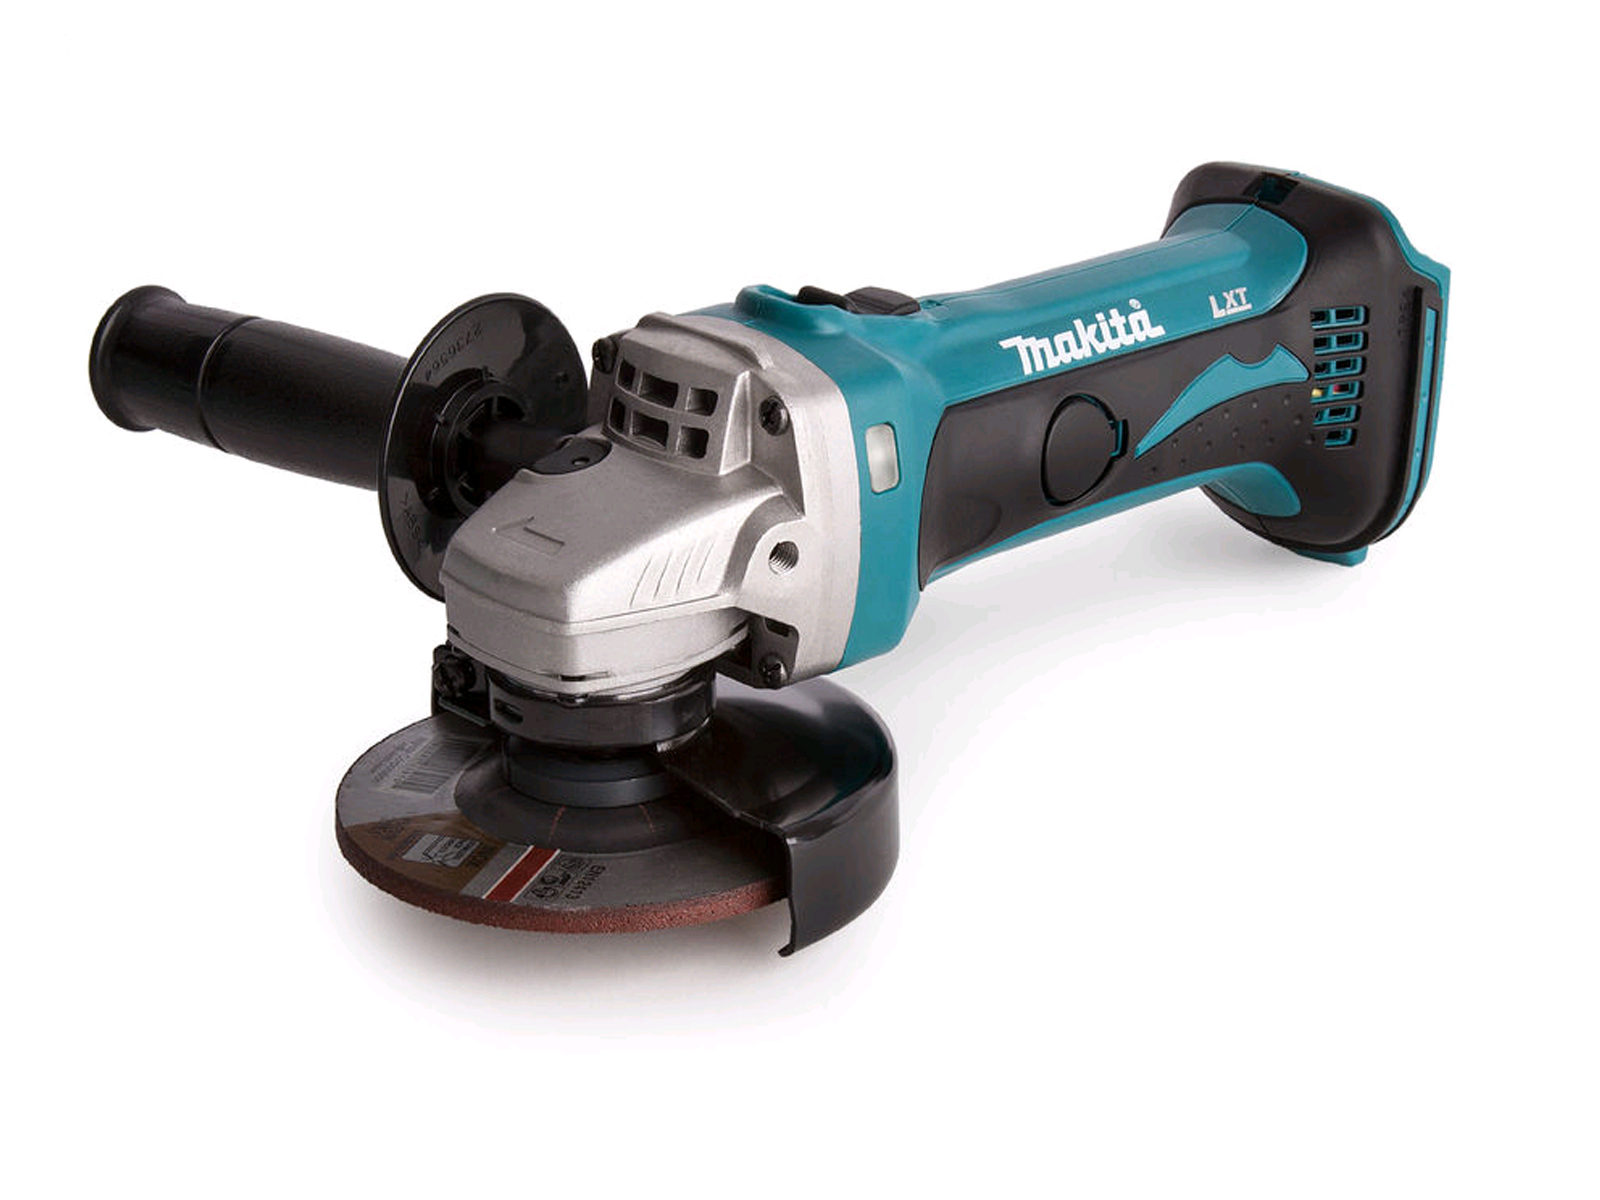 Makita DGA452 18V Brushed 115mm Angle Grinder LXT - Body Only